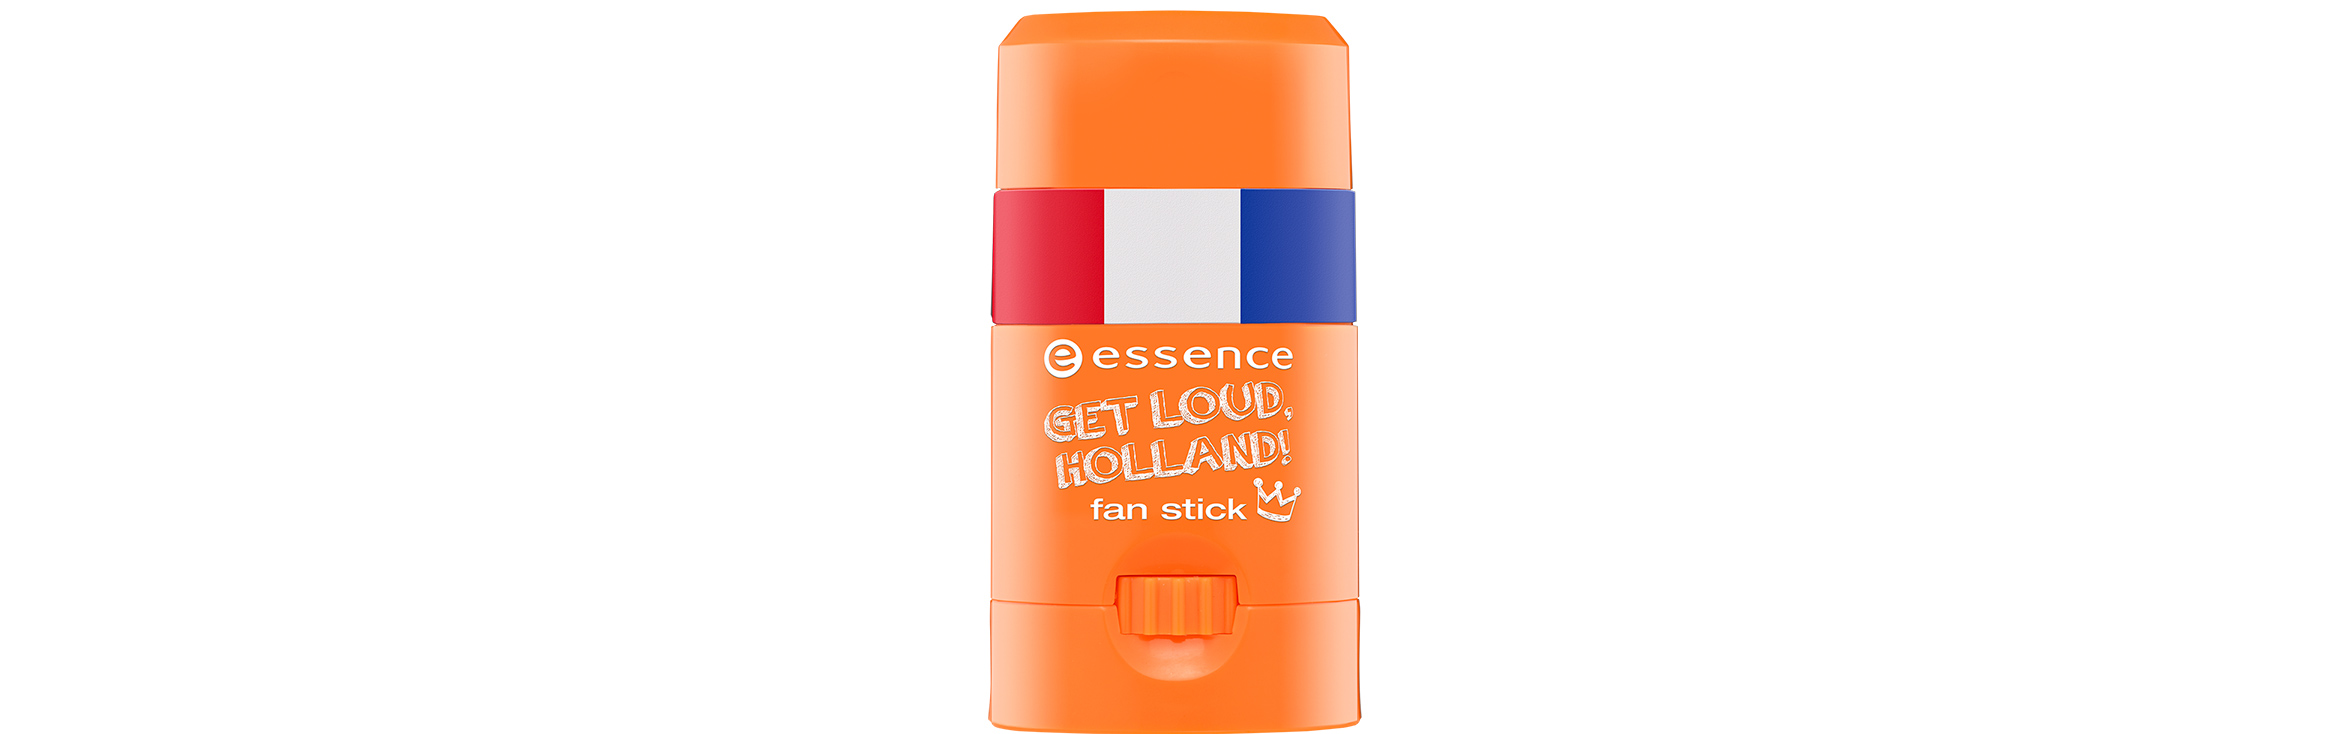 Essence-get-loud-holland-fan-stick